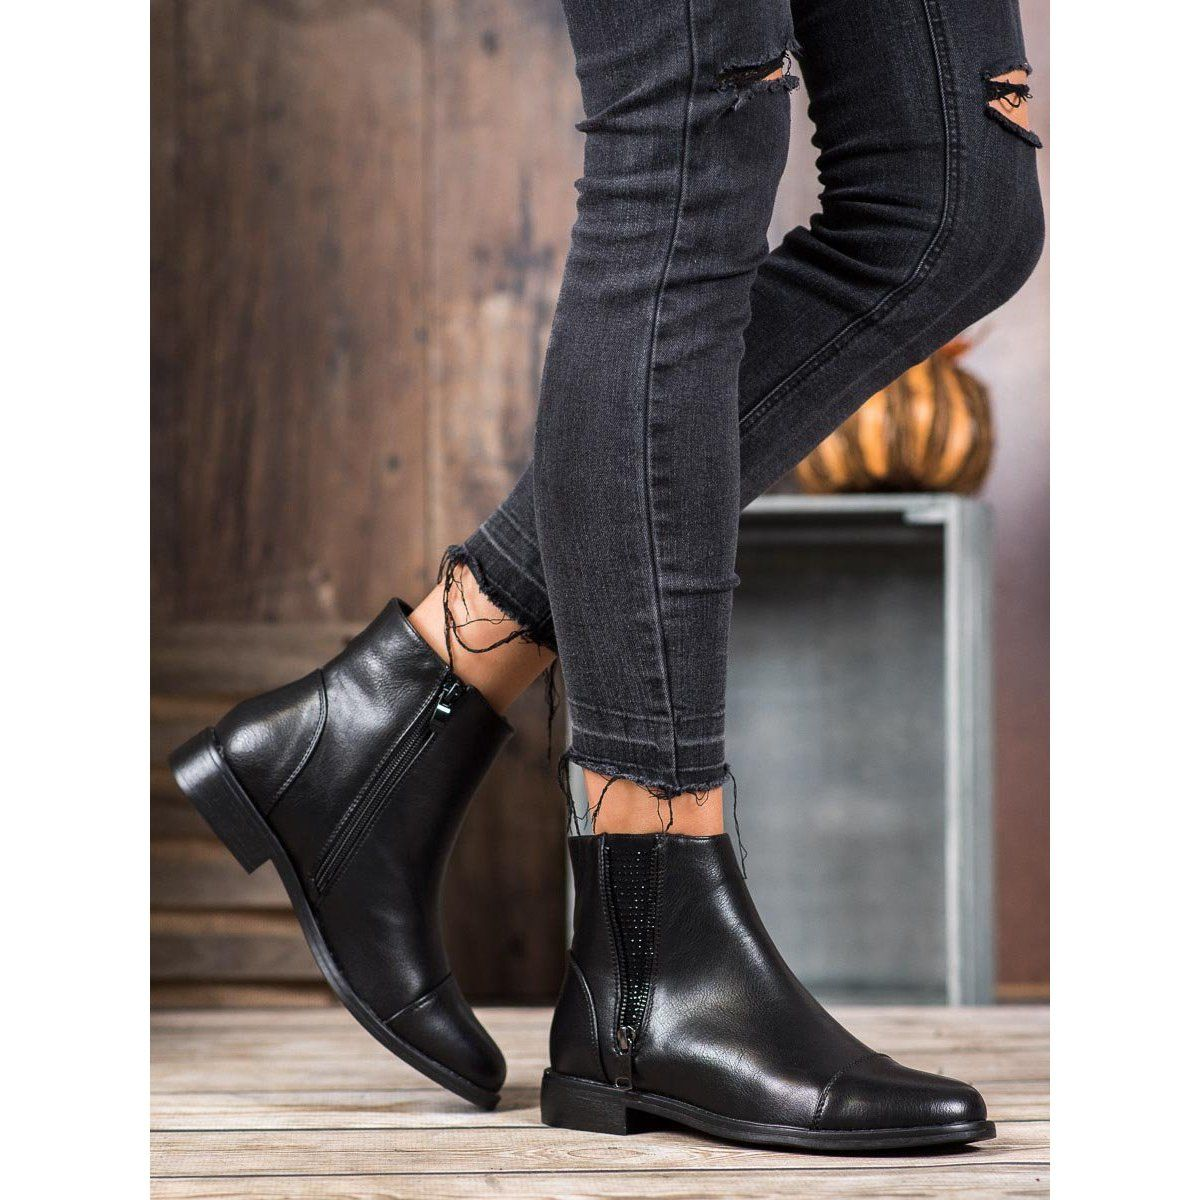 J Star Elegant Ankle Boots With Crystals Black